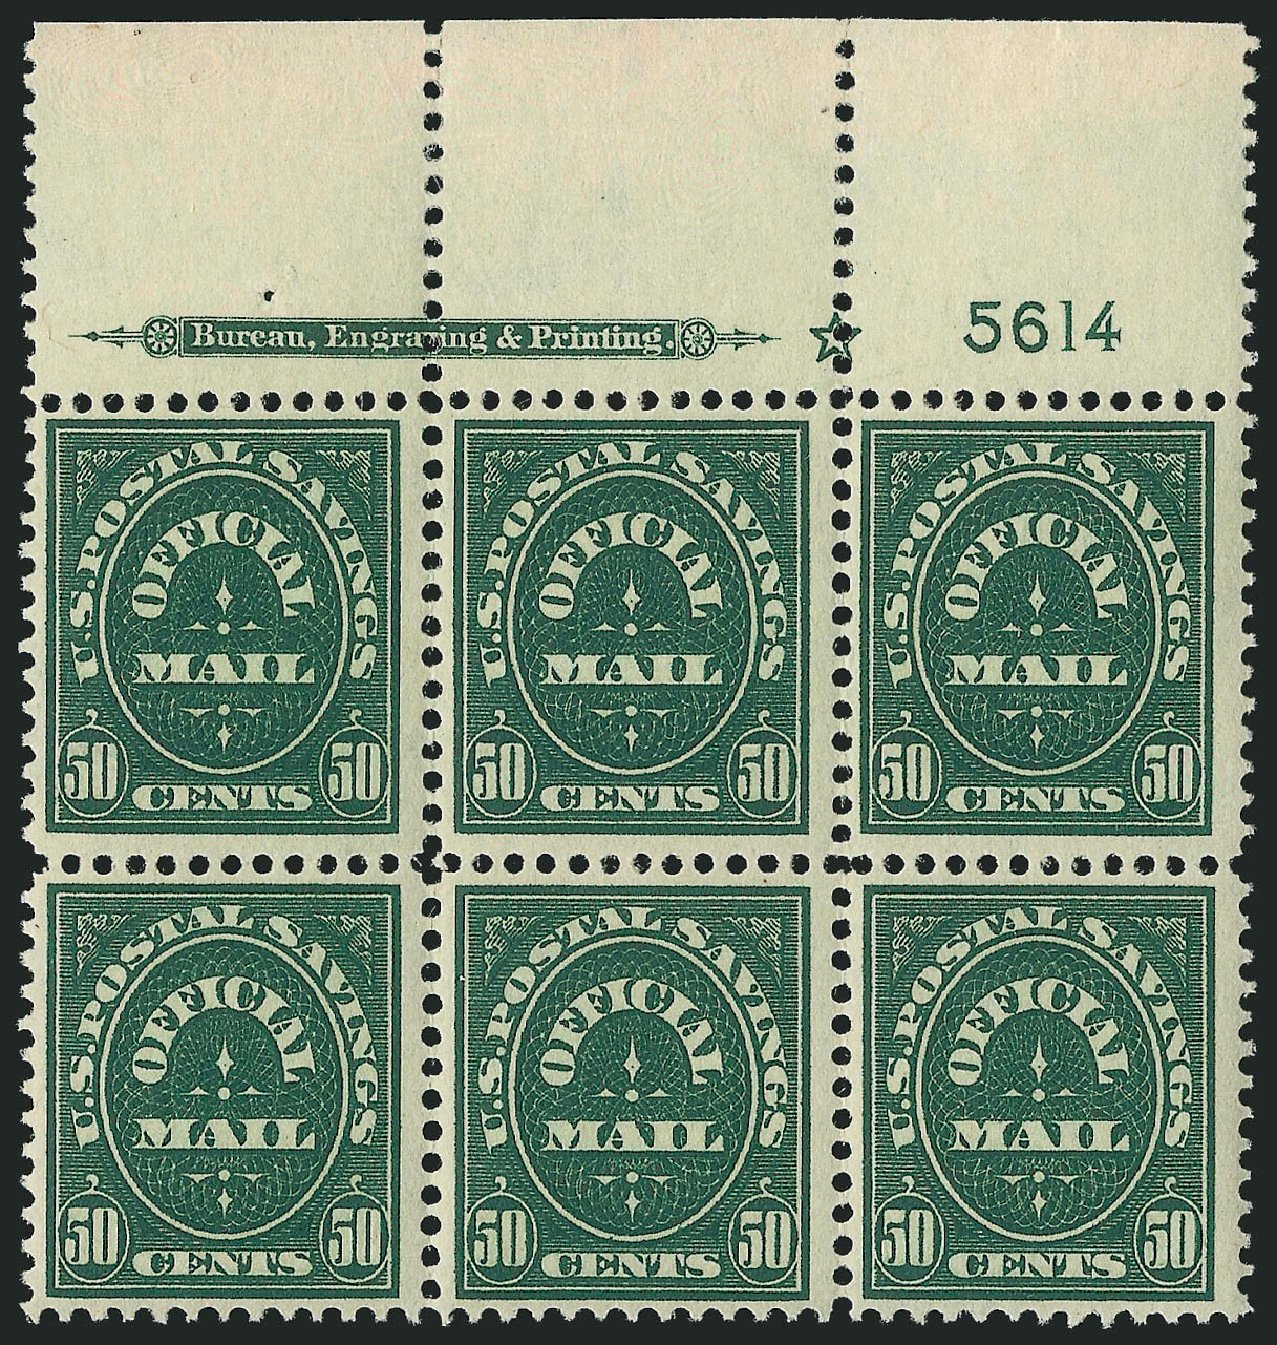 US Stamps Price Scott Catalogue # O122 - 1911 50c Postal Savings Official. Robert Siegel Auction Galleries, Apr 2015, Sale 1096, Lot 902